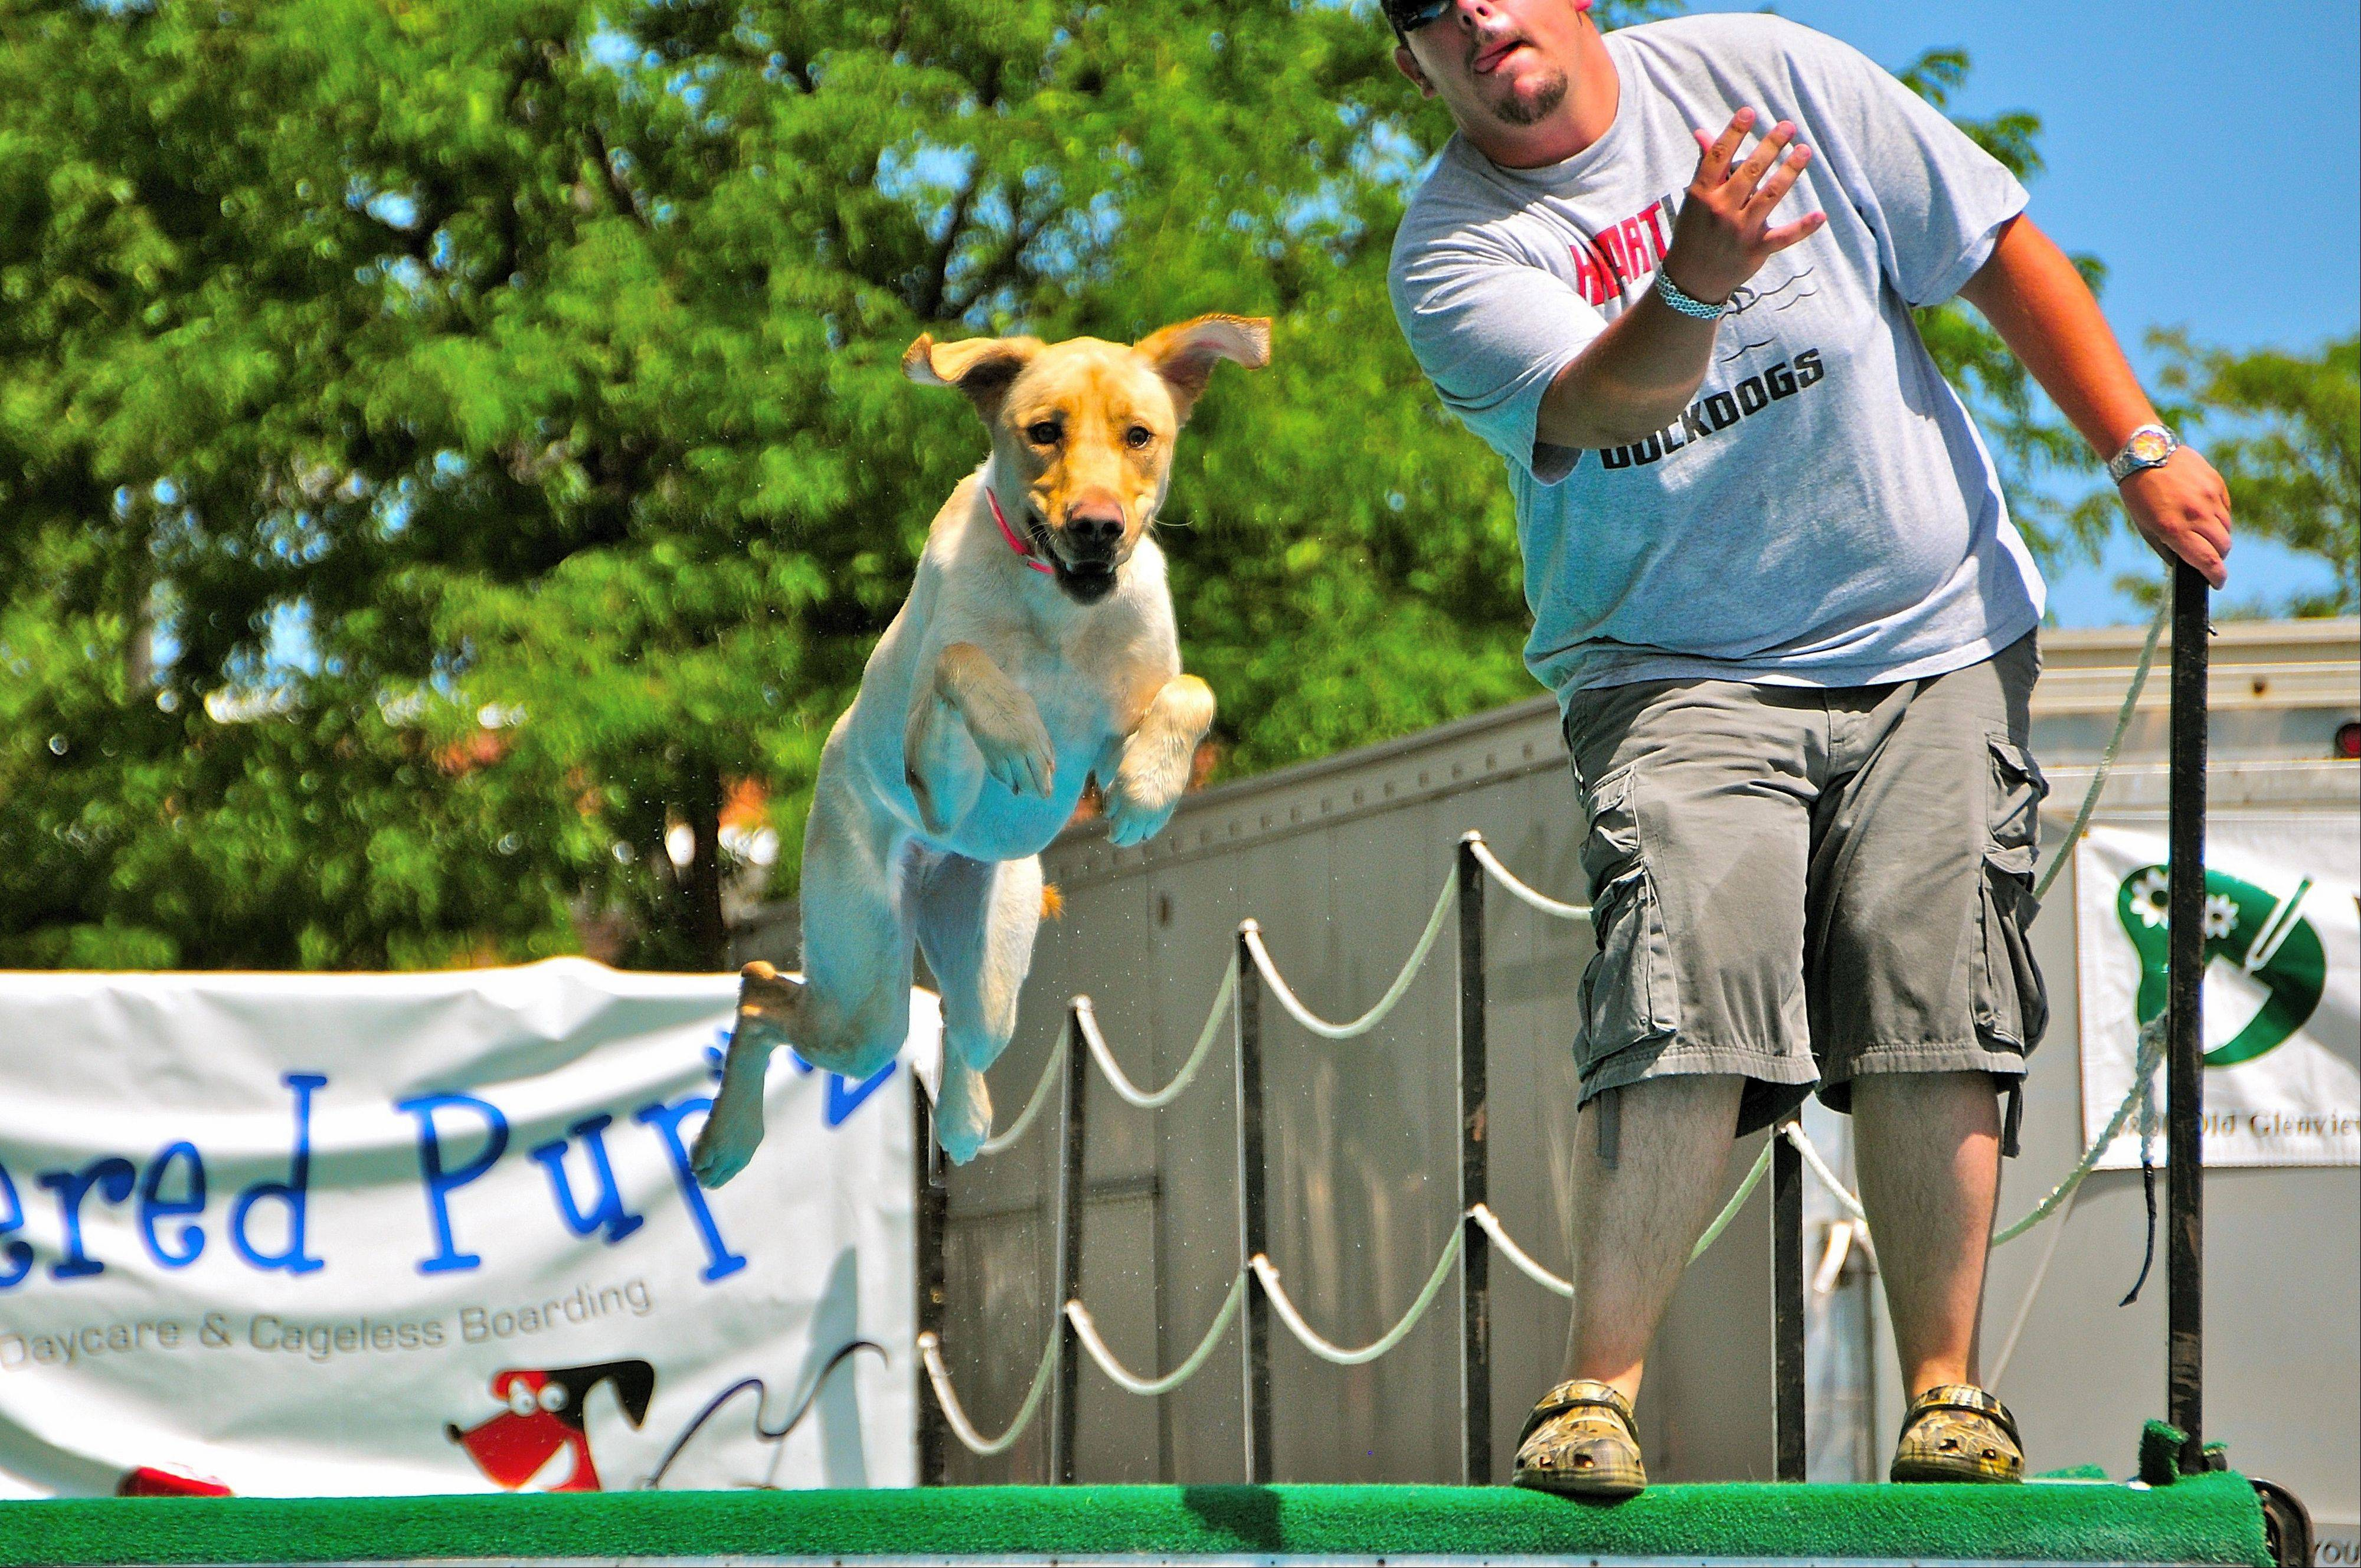 The Dog Days of Summer in downtown Libertyville July 7-10 will feature more than 100 nationally ranked top jumping dogs competing for prizes and rankings, as well as a variety of canine-focused competitions, promotions and activities.